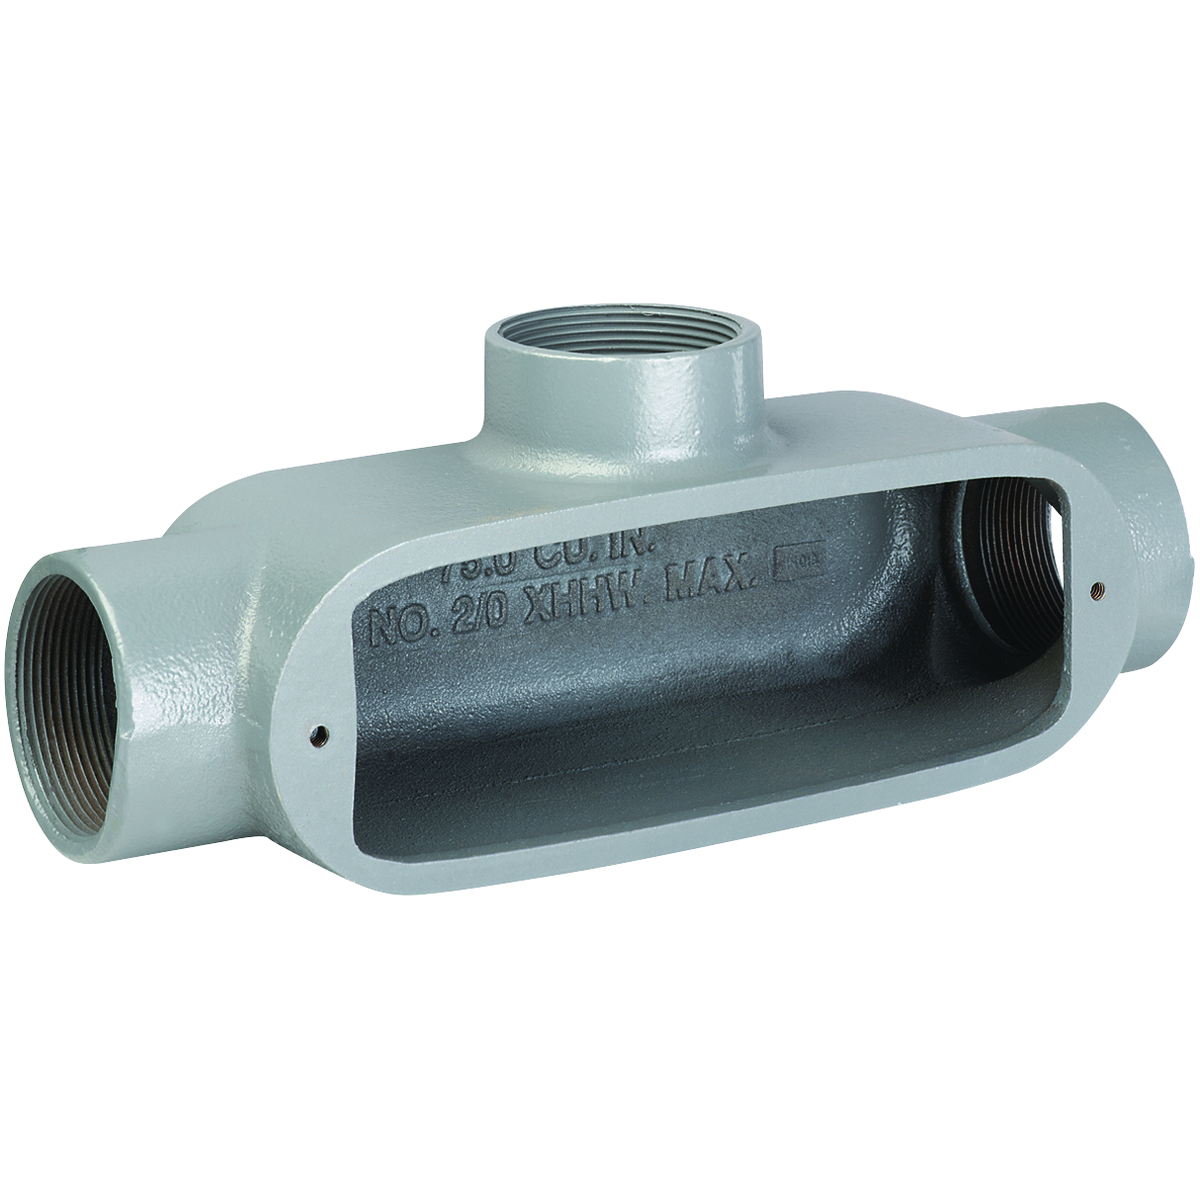 KILLARK OT-1 ALUM 1/2 CONDUIT BODY